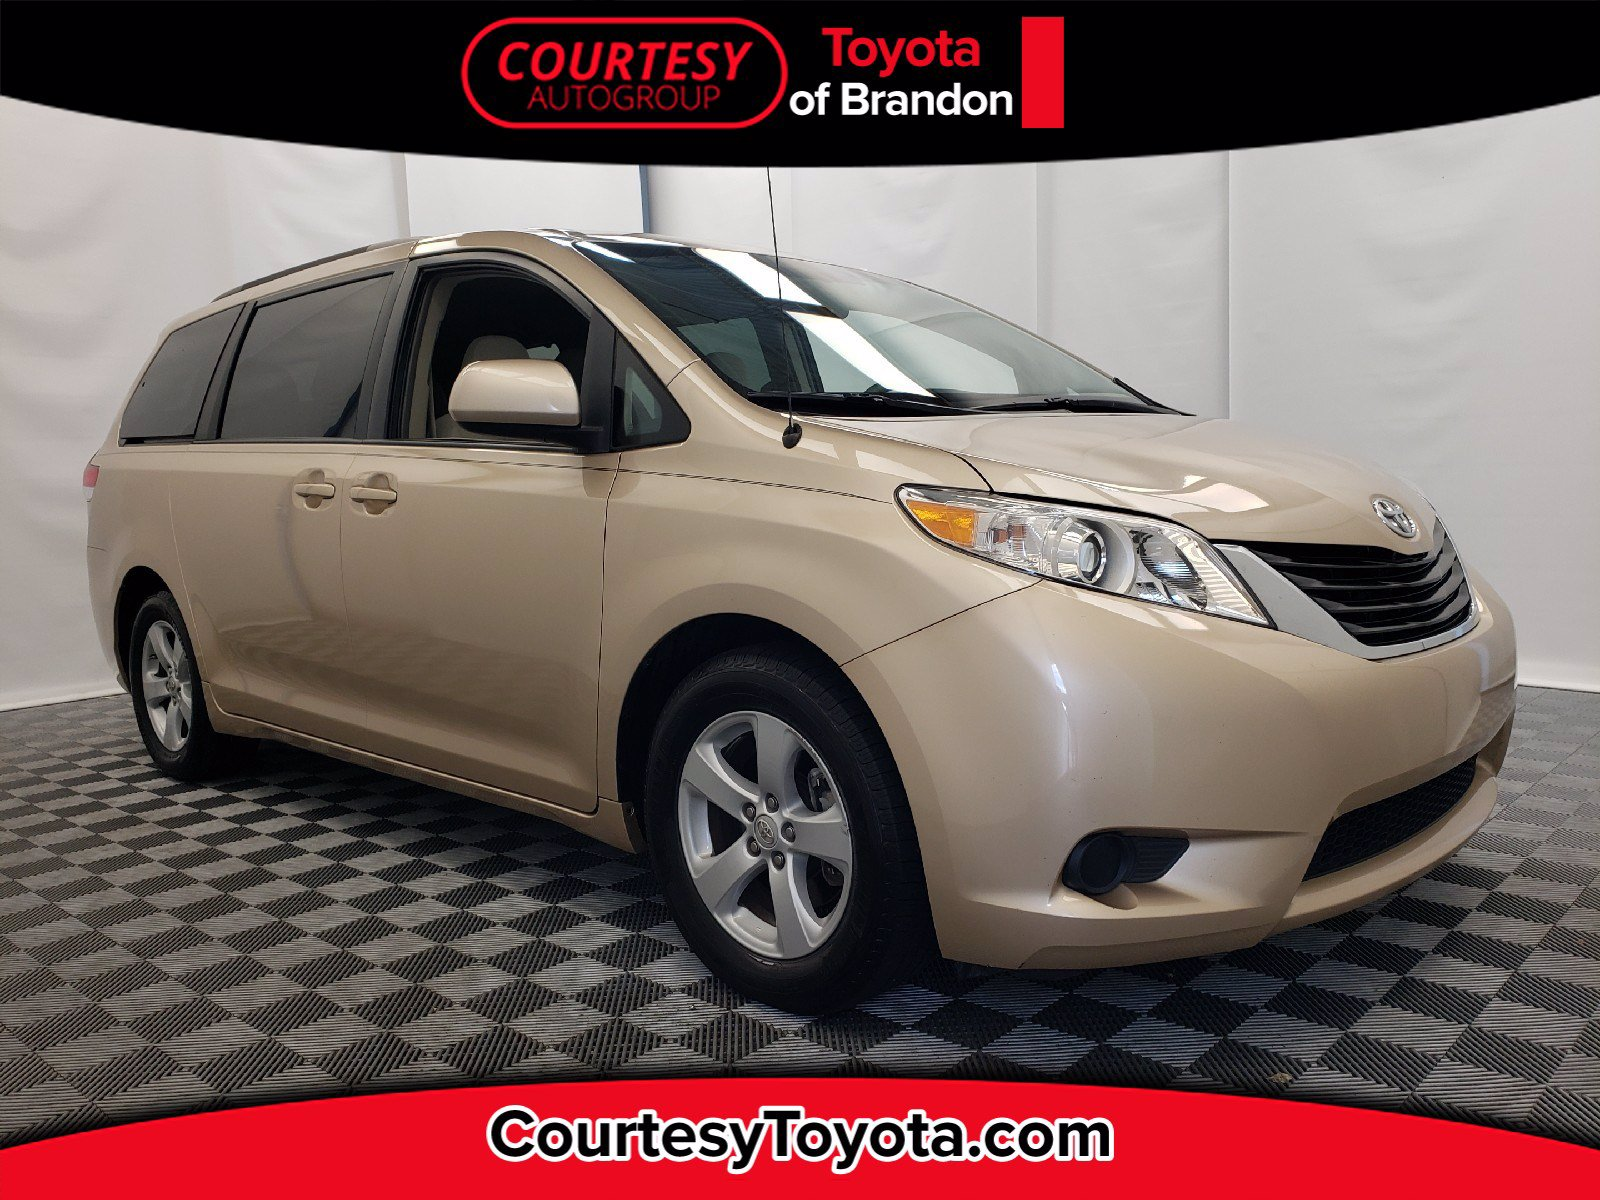 used sienna used toyota sienna for sale tampa pre owned toyota sienna brandon courtesy toyota of brandon used sienna used toyota sienna for